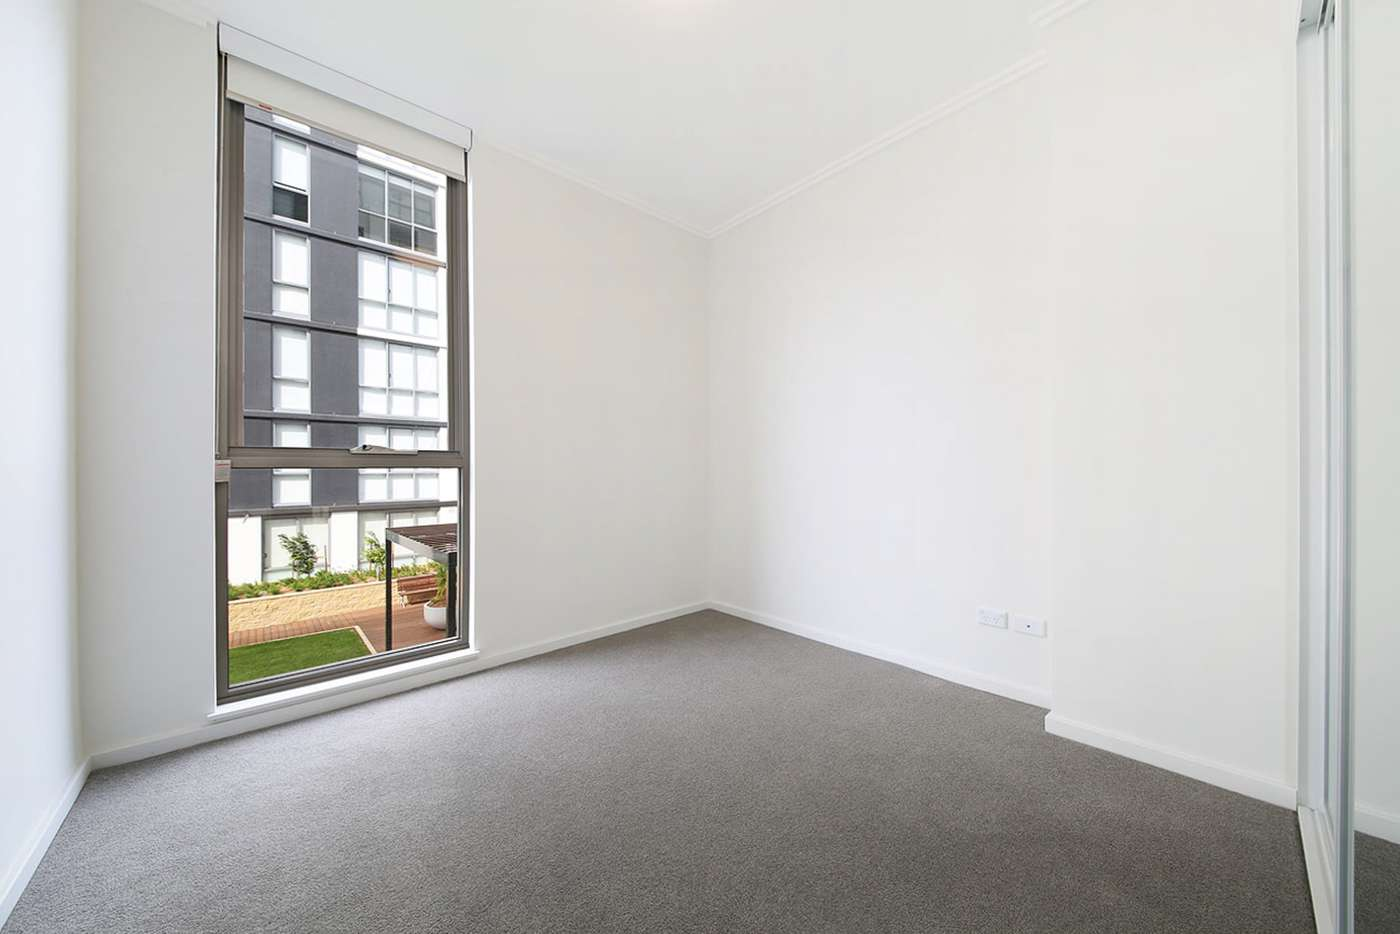 Fifth view of Homely apartment listing, 321/1-39 Lord Sheffield Circuit, Penrith NSW 2750